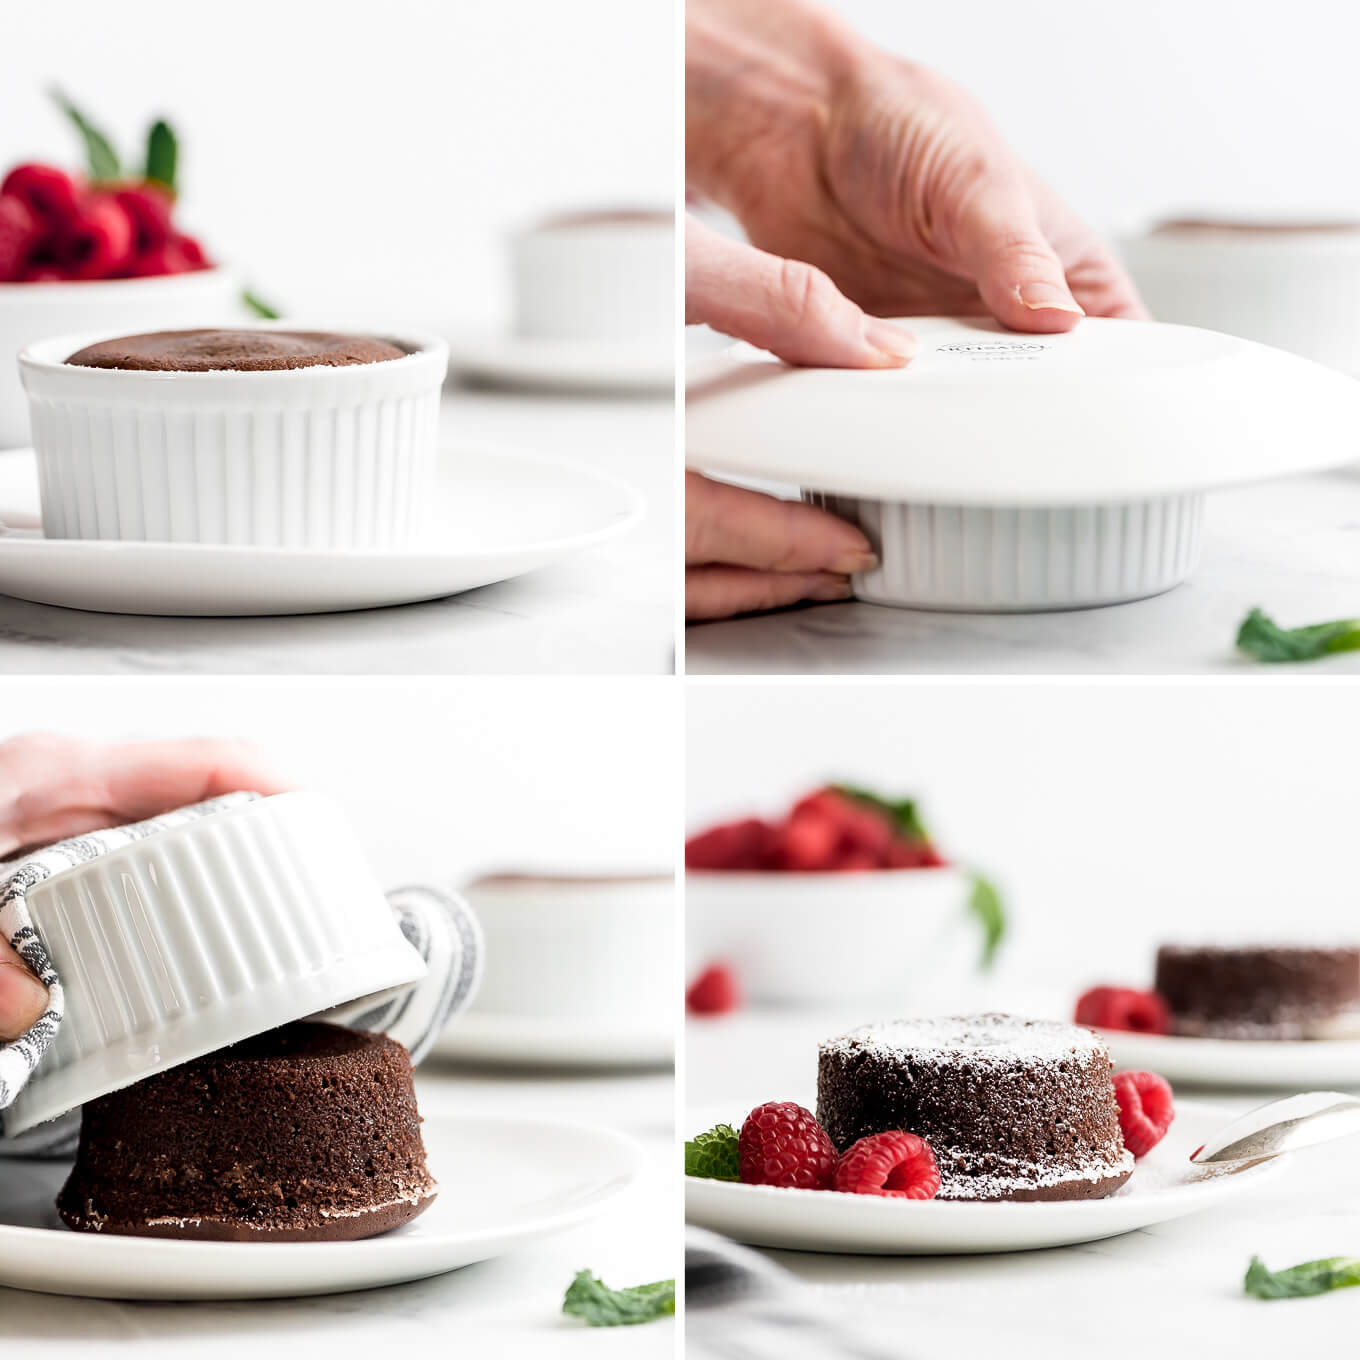 Process shots of removing a chocolate lava cake from a ramekin.